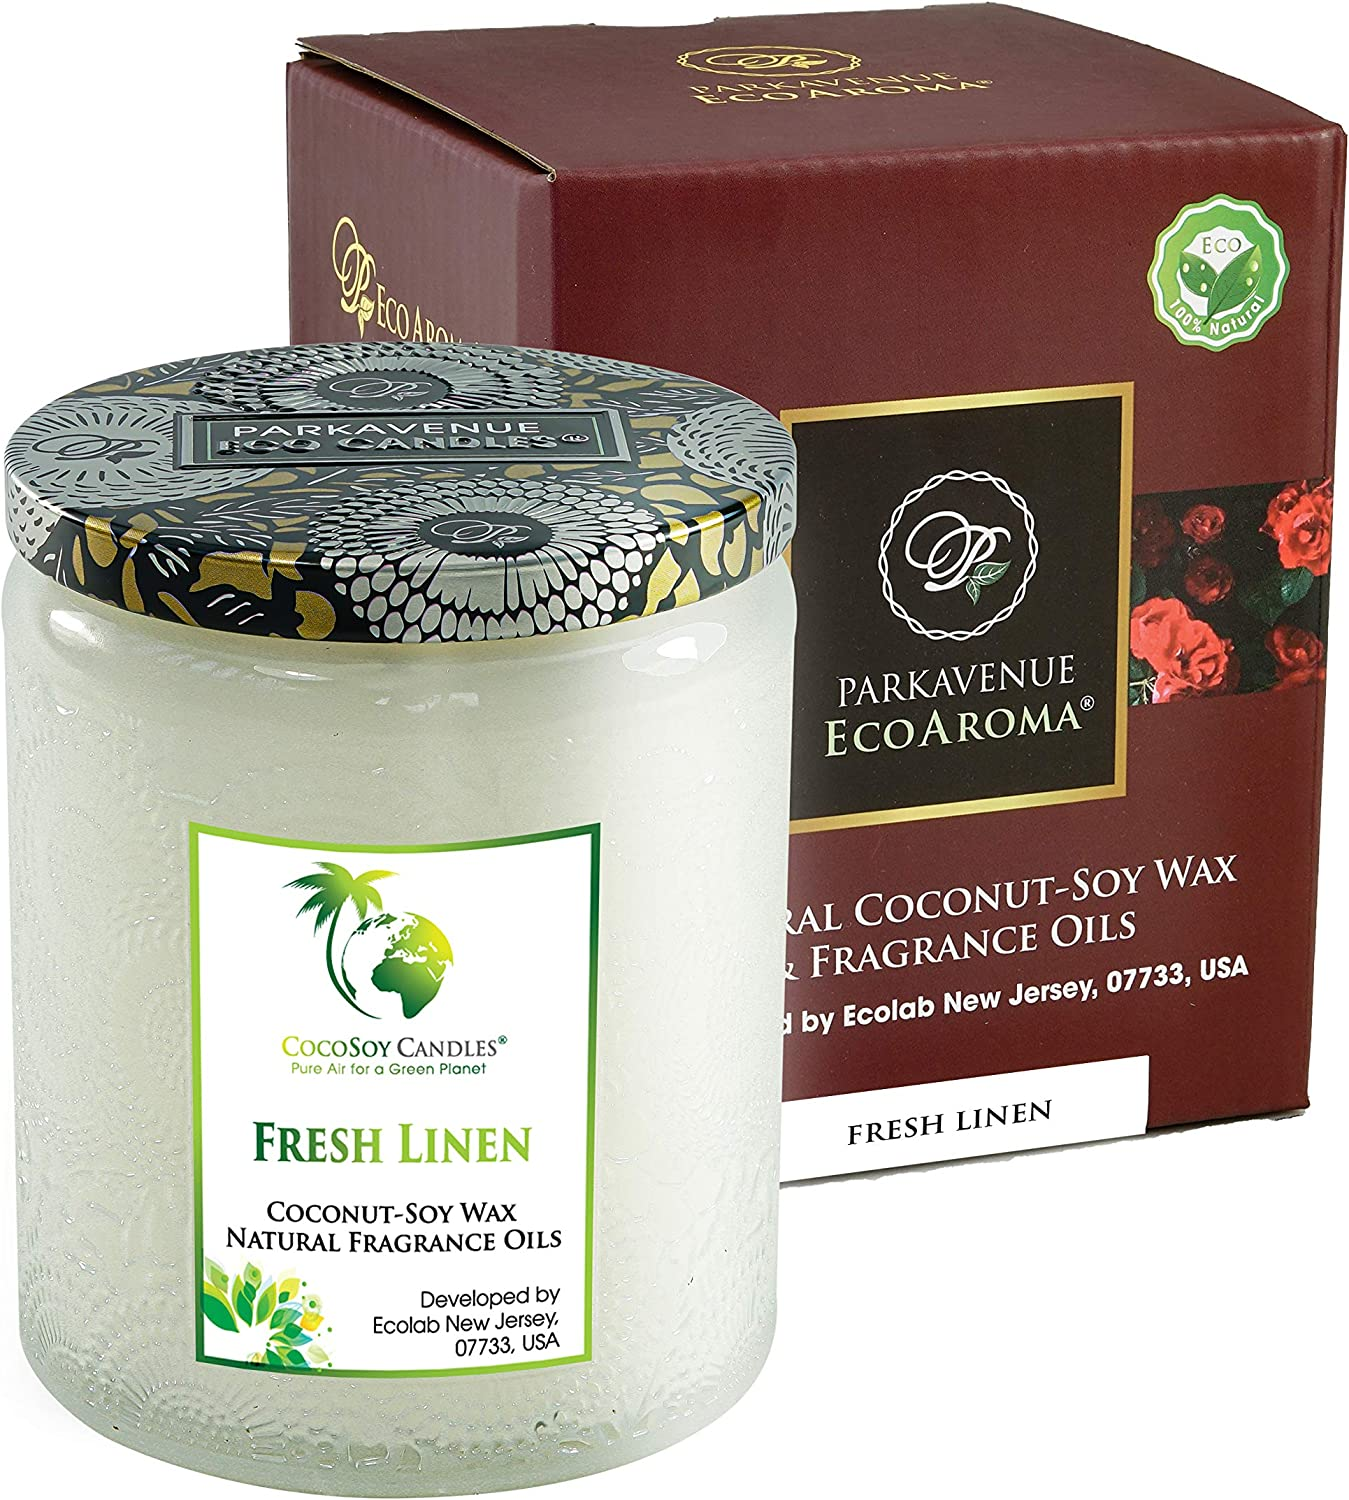 EcoAroma Fresh Linen & Apple Blossom Luxury Scented Organic Coco-Soy Jar Candles, 3D Flower Patent Color Jar Hand Poured Coconut Soy Aromatherapy Candles Home Decorative Gifts 8 Oz